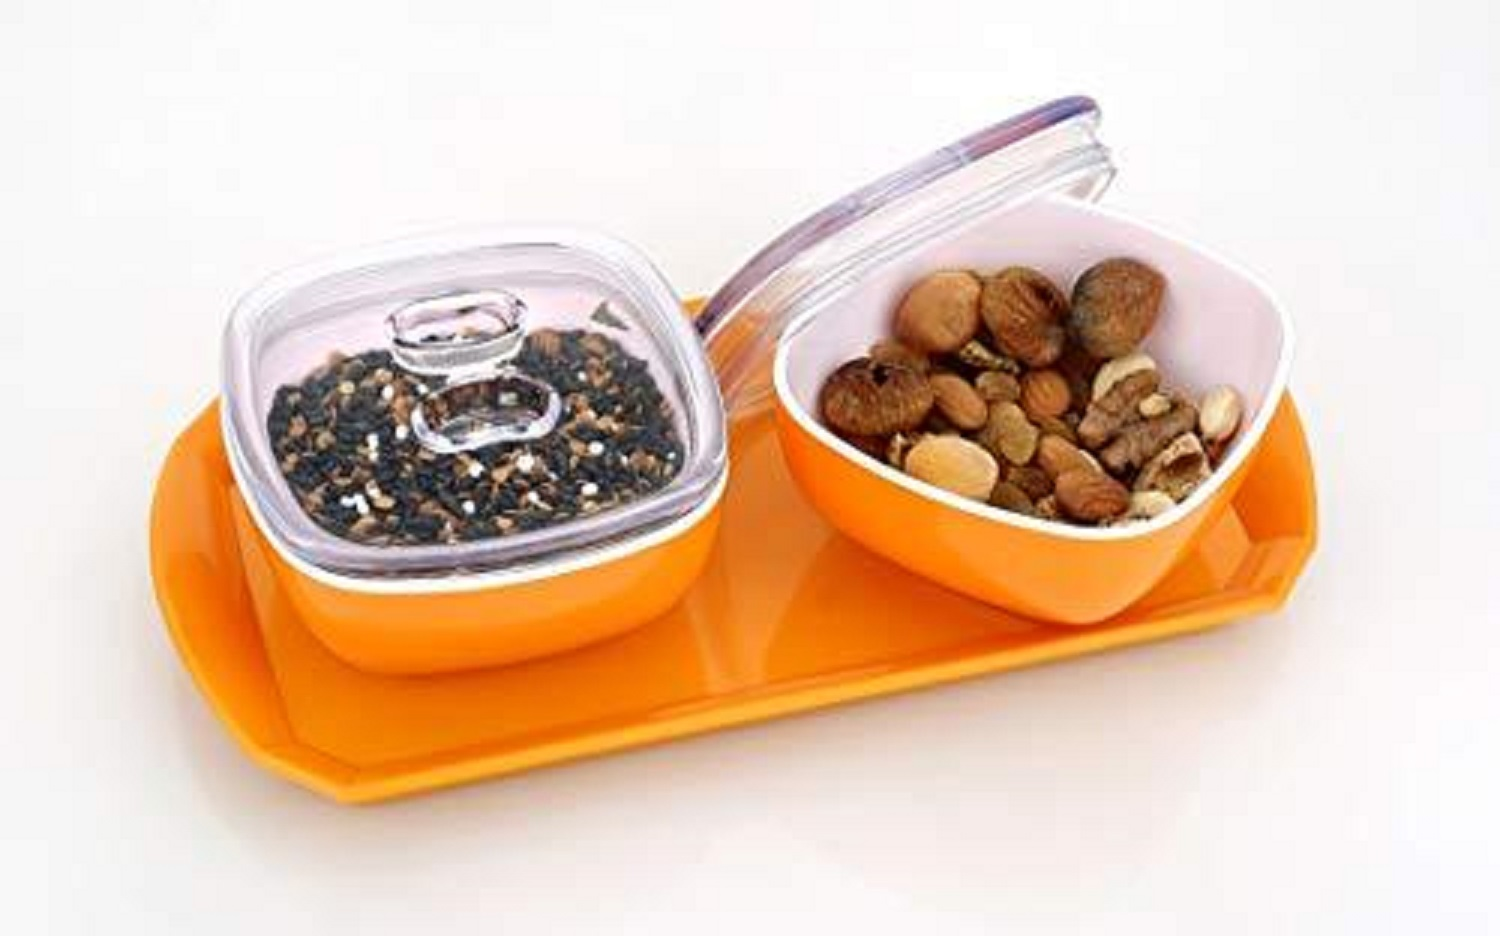 Multipurpose Dryfruit Box with 2 Bowl and Tray